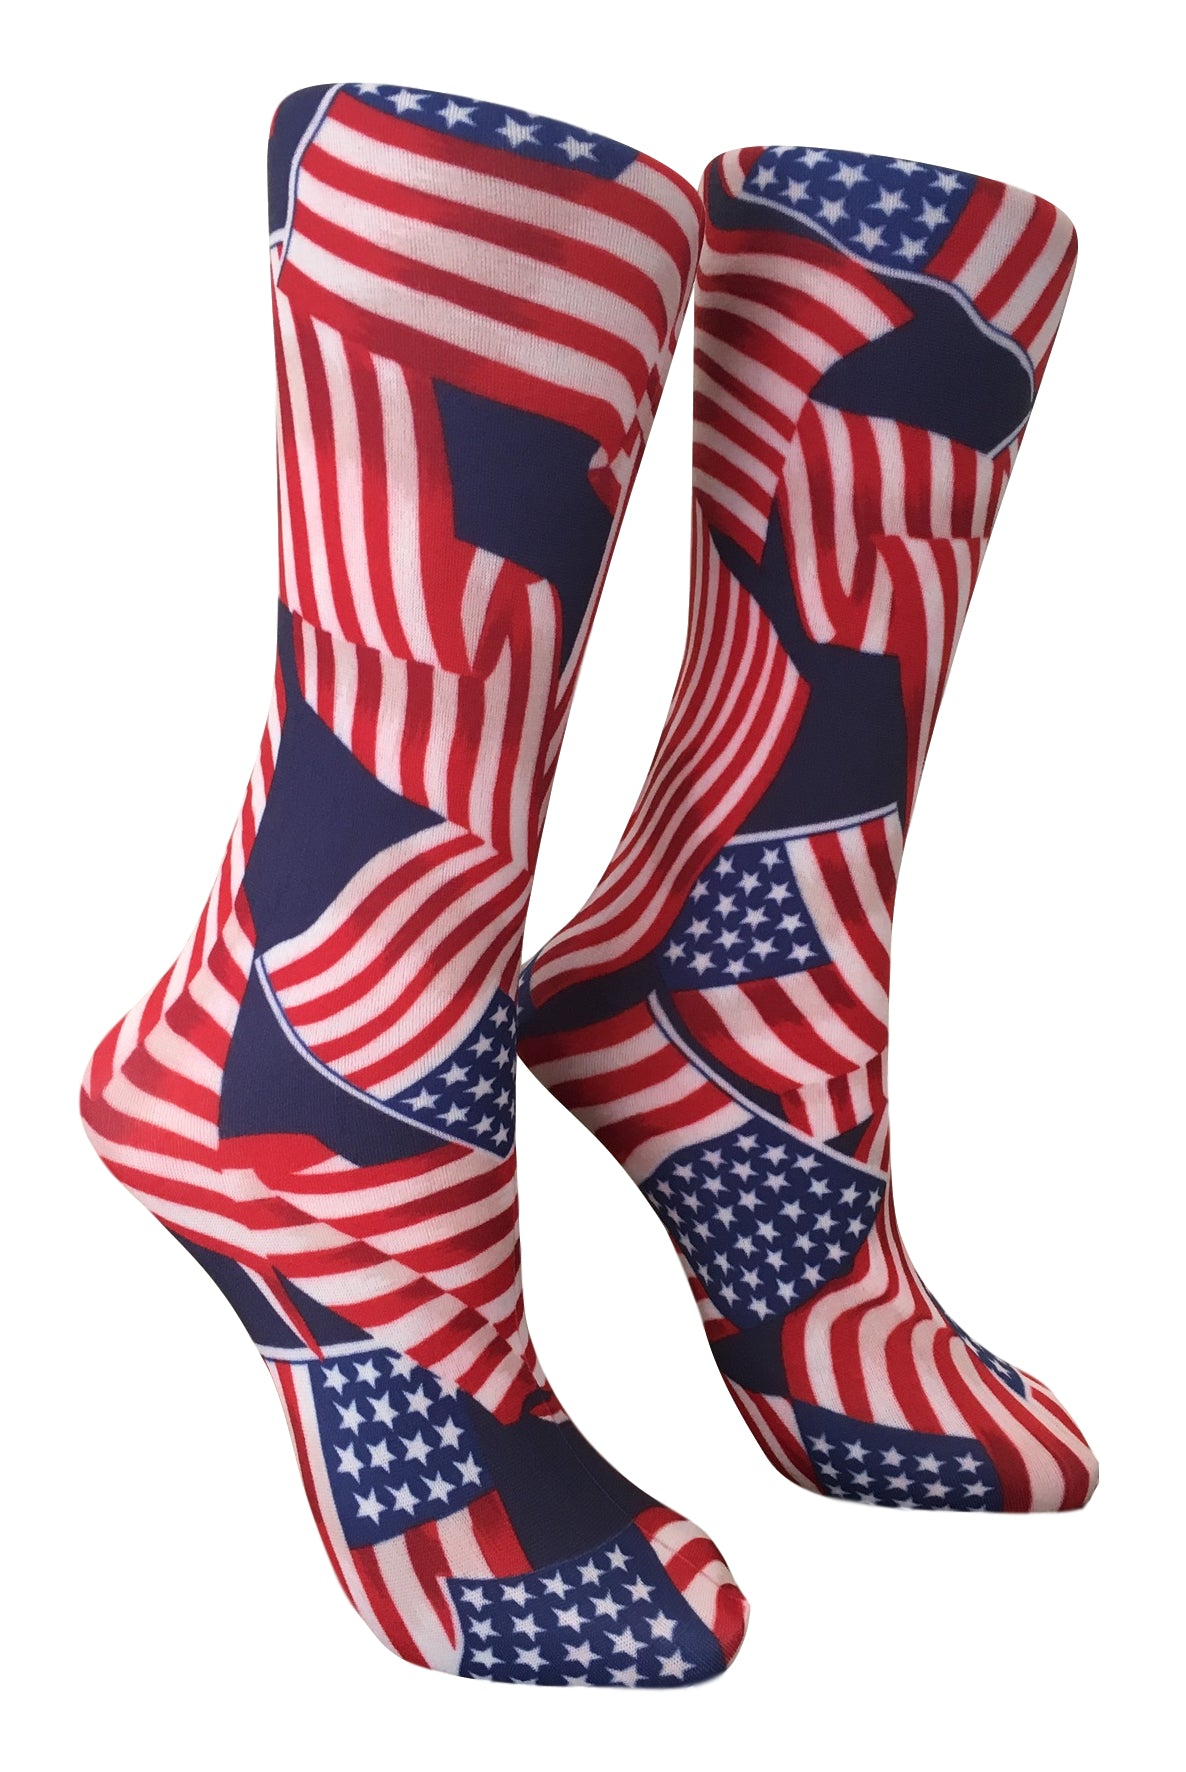 Soxtrot Knee High - Stars & Stripes